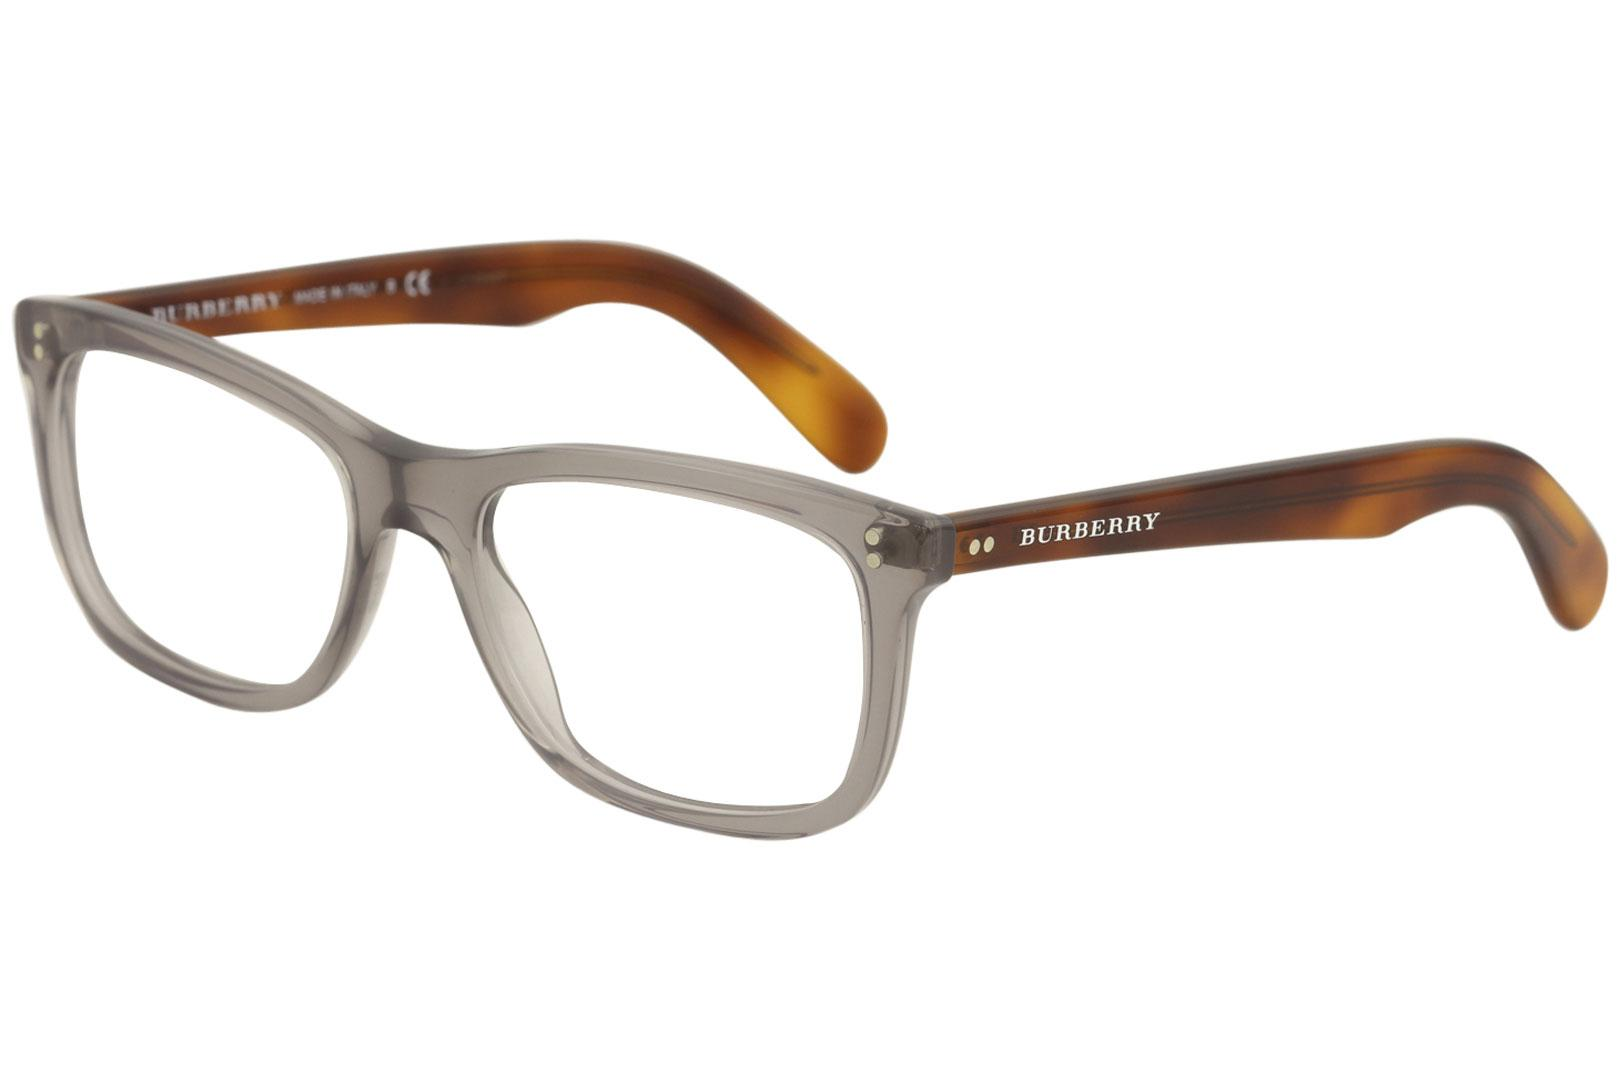 9aca8f5c545c Burberry Men s Eyeglasses BE2212 BE 2212 Full Rim Optical Frame by Burberry